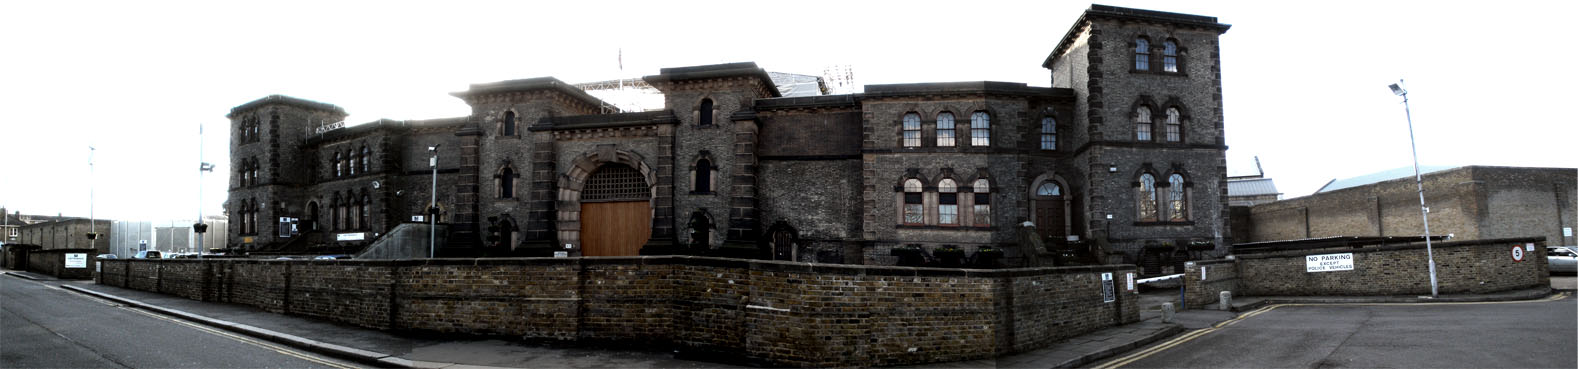 The Famous, Infamous and Notorious Wandsworth Prison, Seekyt